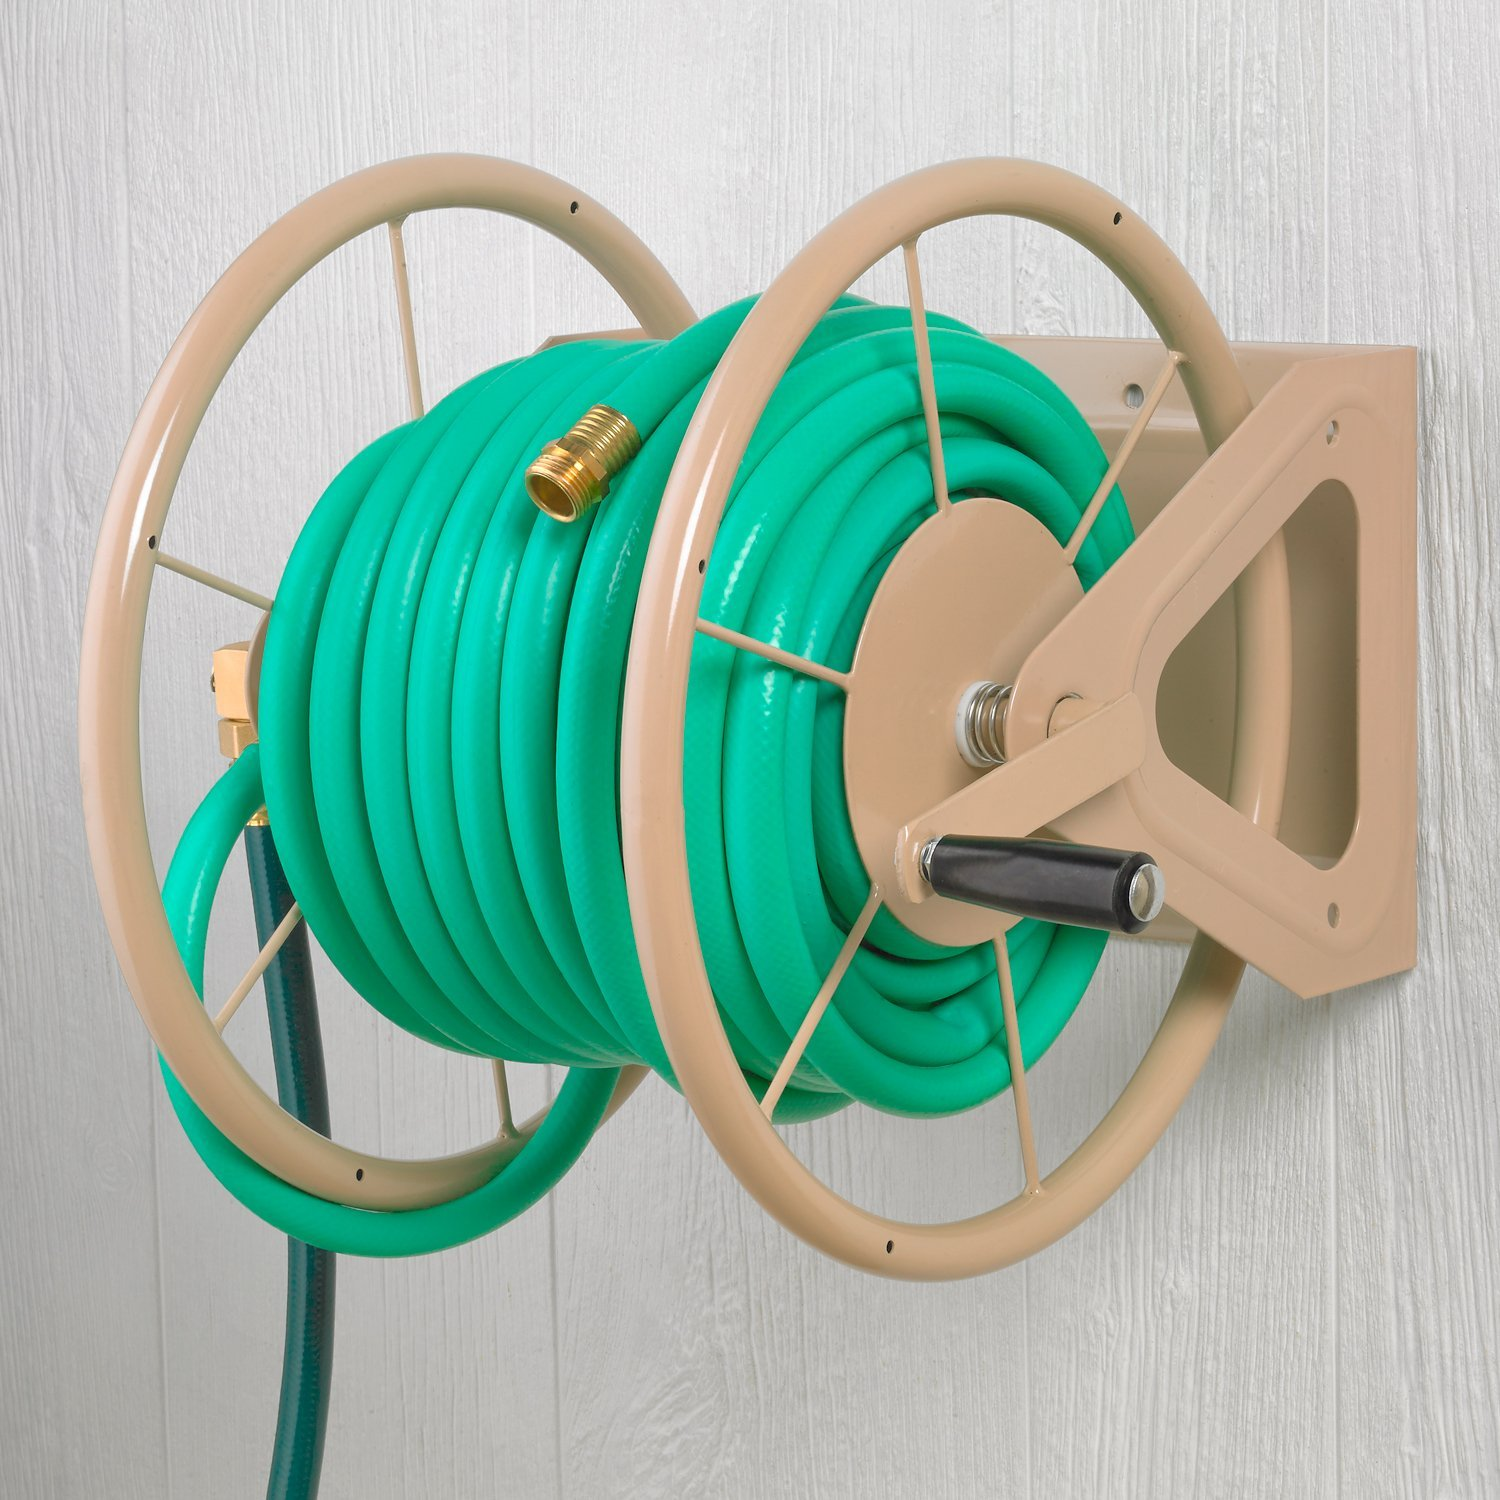 Liberty Garden Products 703 1 Multi Purpose Steel Wall And Floor Mount Garden  Hose Reel, Holds 200 Feet Of 5/8 Inch Hose   Tan   Walmart.com